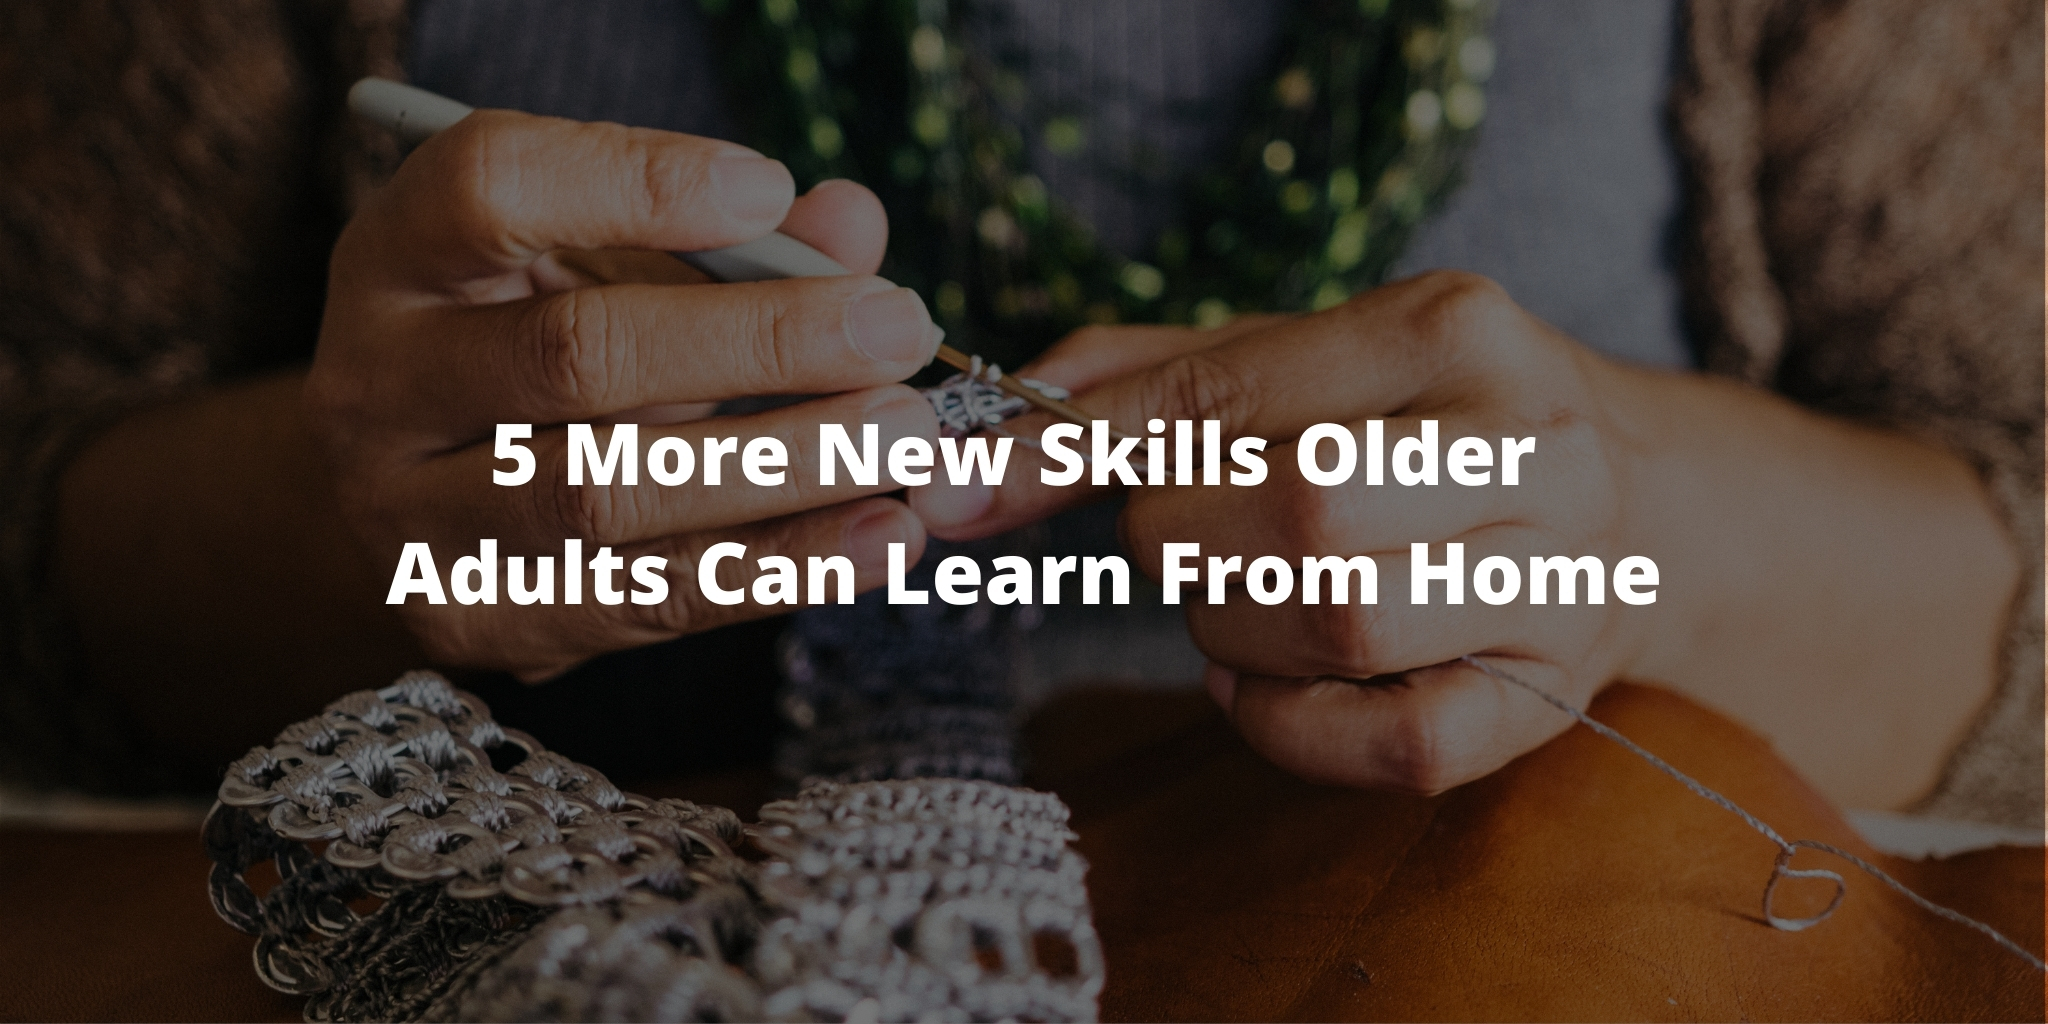 5 More New Skills Older Adults Can Learn From Home